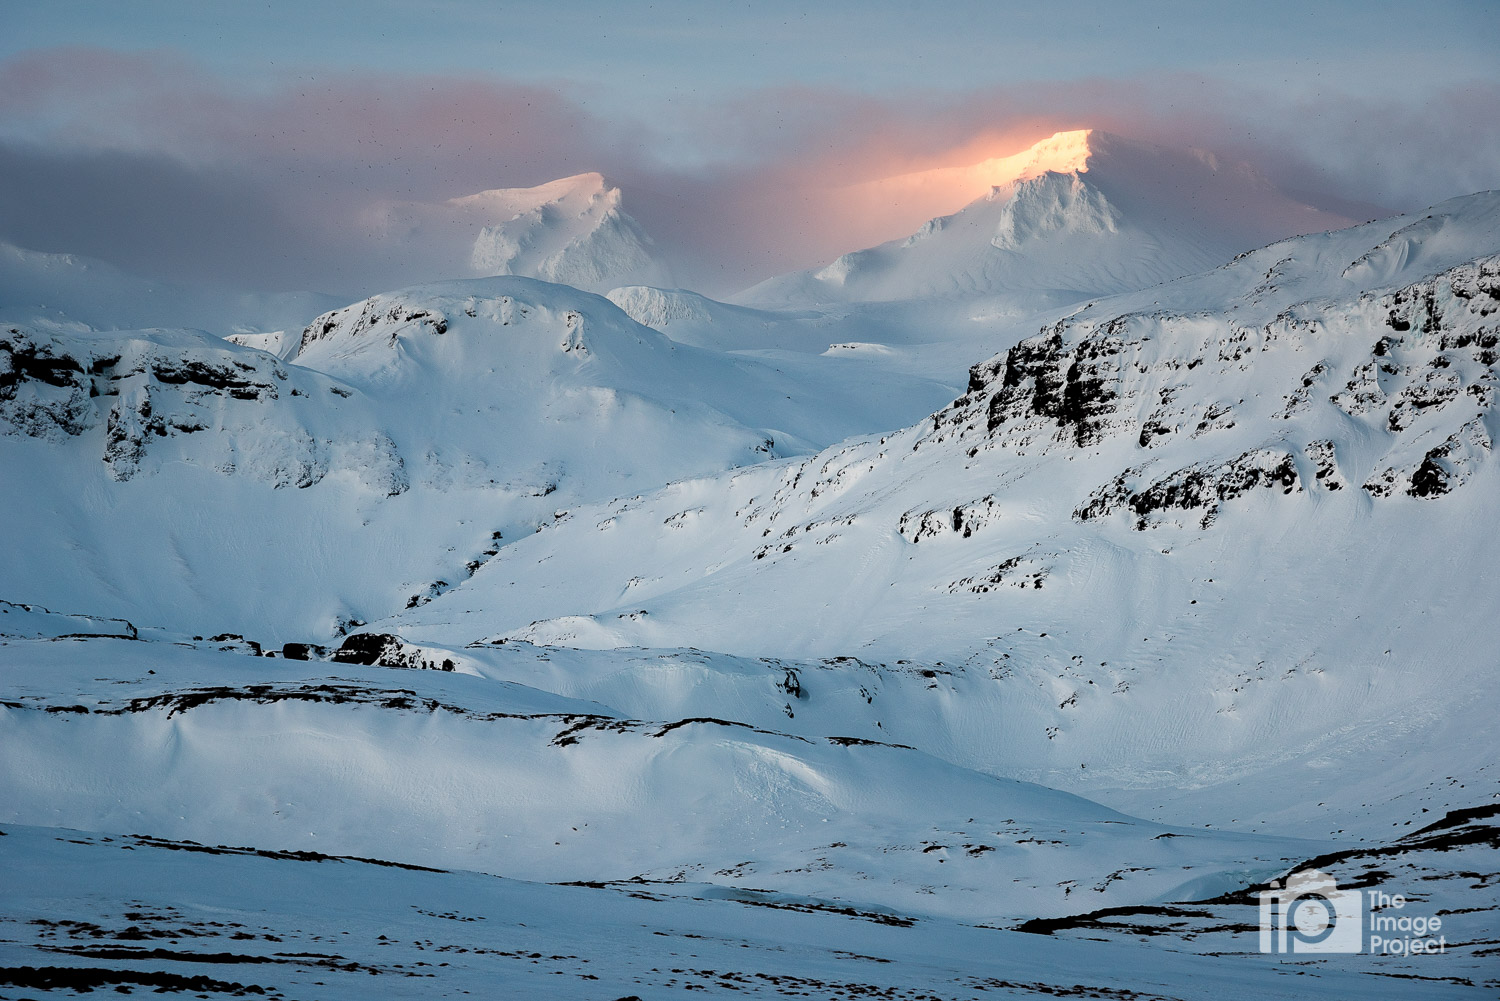 first morning sunrise light hits snowy peak snæfellsnes peninsula iceland by nathan barry the image project in winter